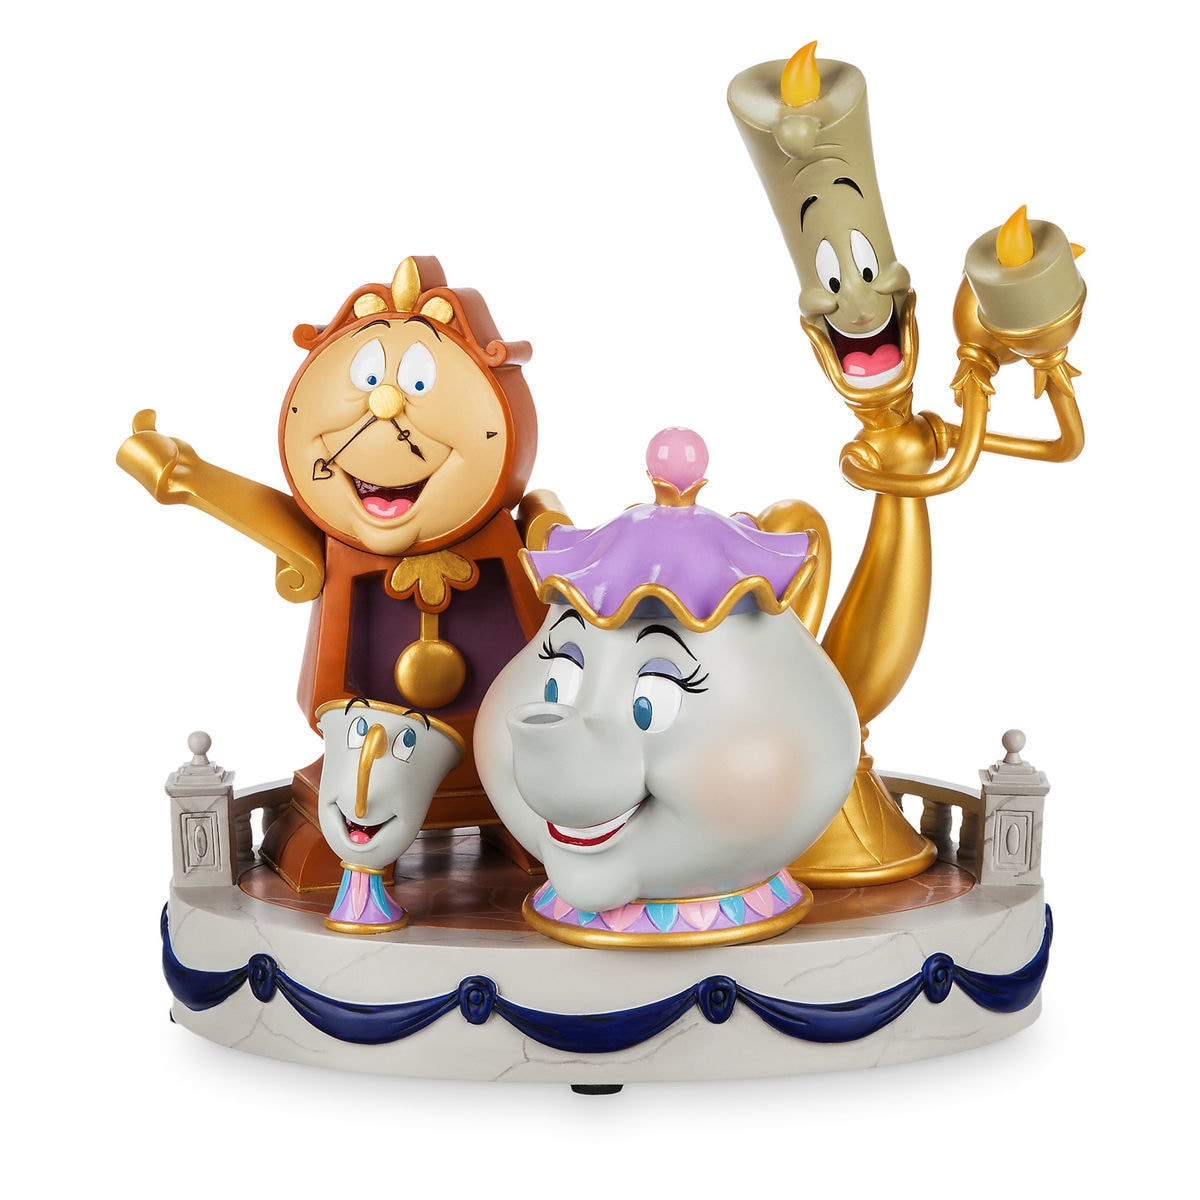 Product Image Of Beauty And The Beast Enchanted Objects Figurine By Derek